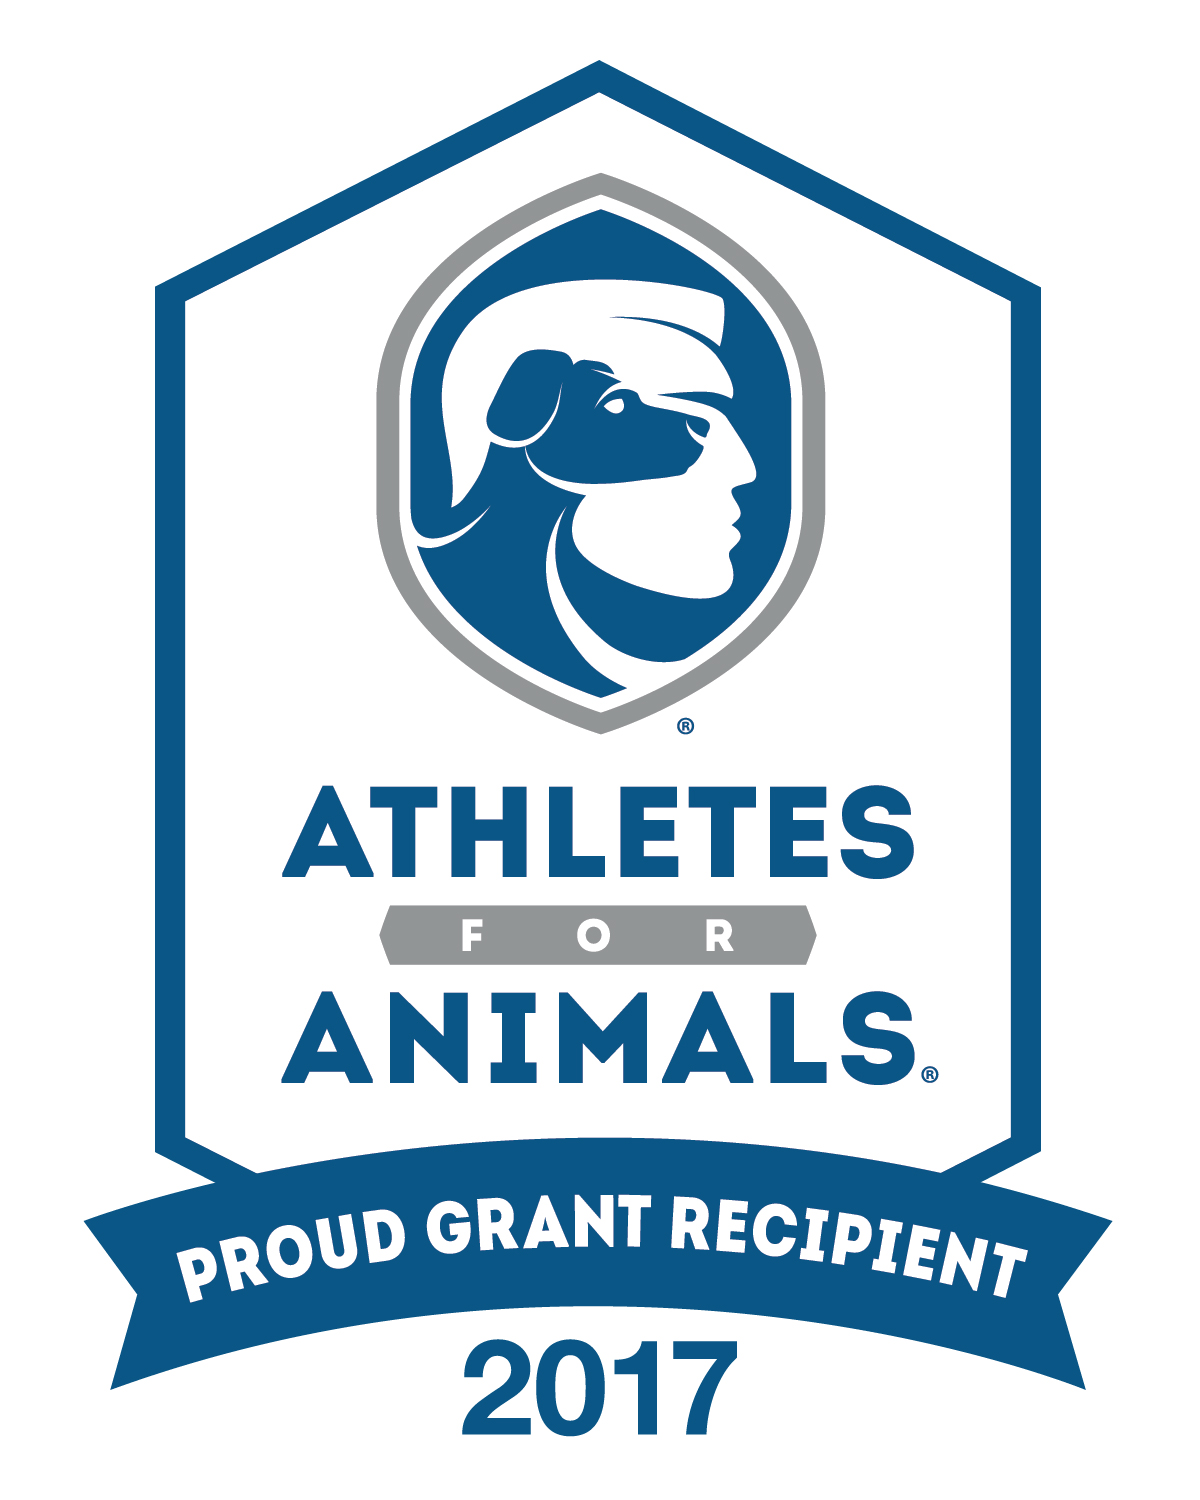 Athletes for Animals Grant Recipient